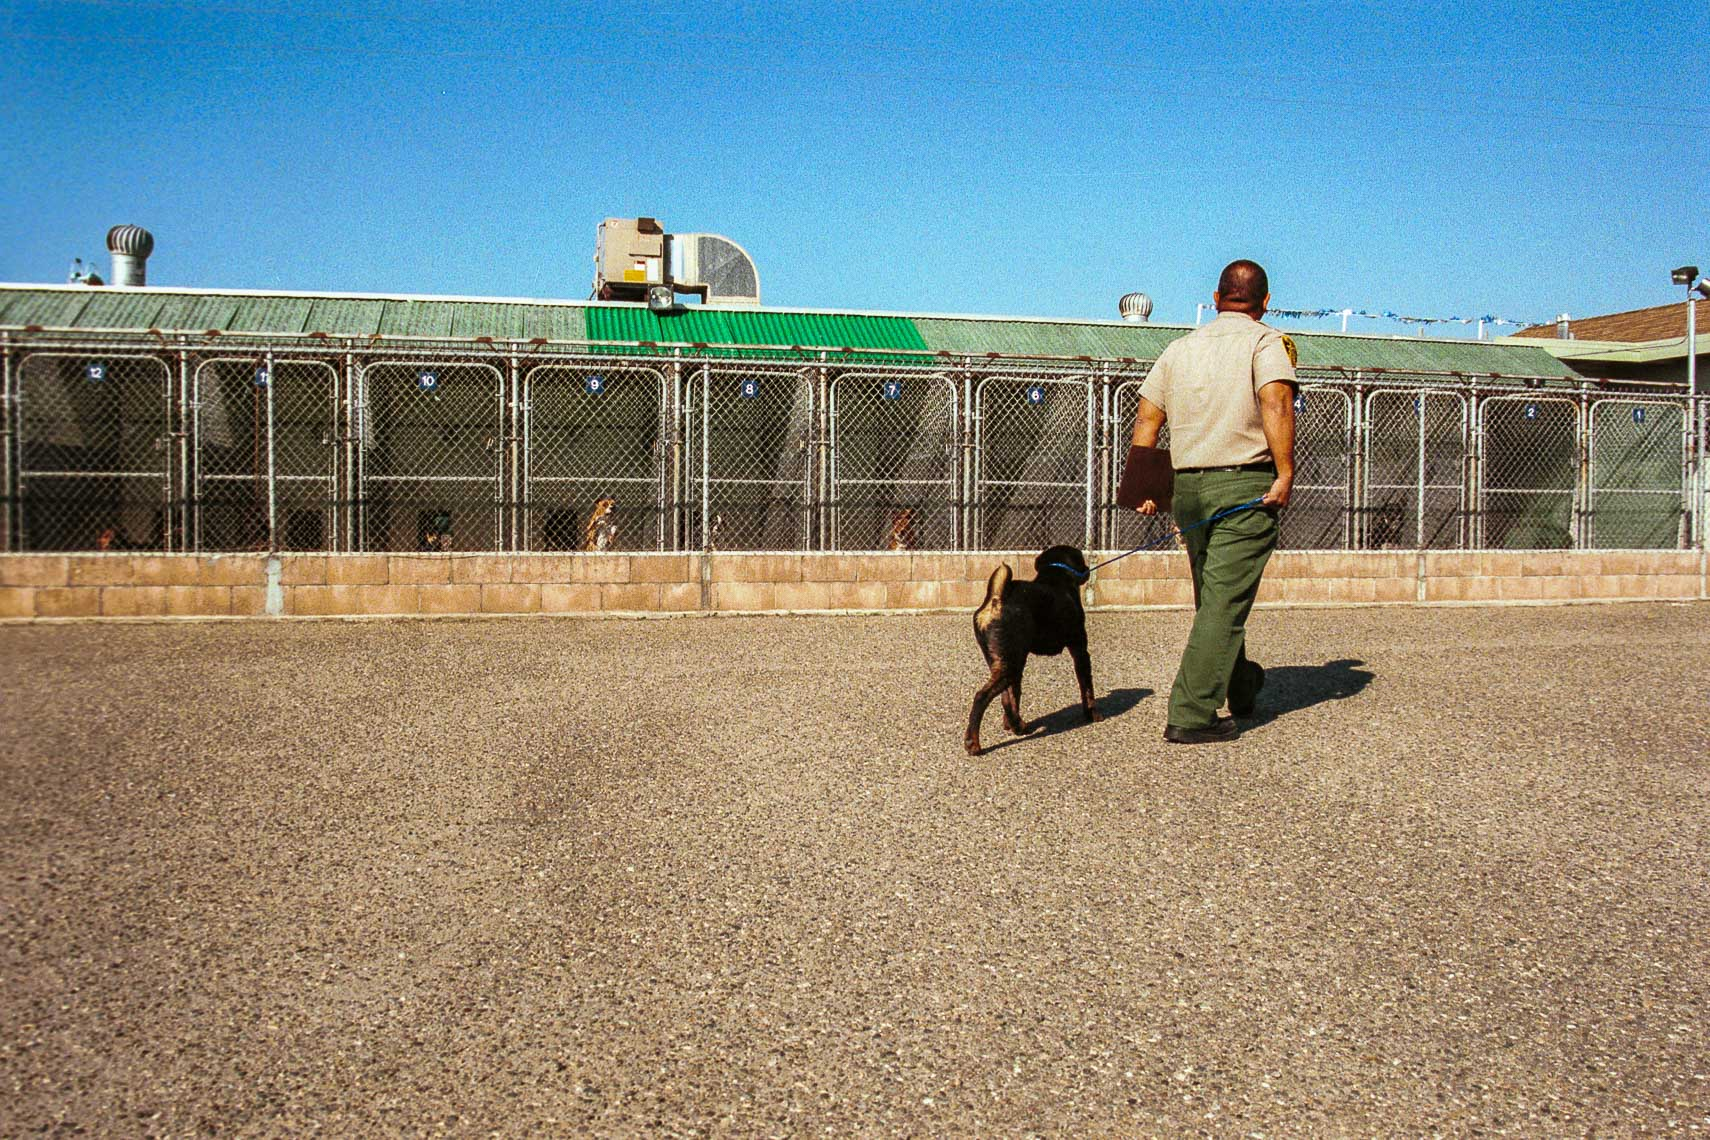 patrick_cavan_brown_dog_catcher_pound_animal_control-29